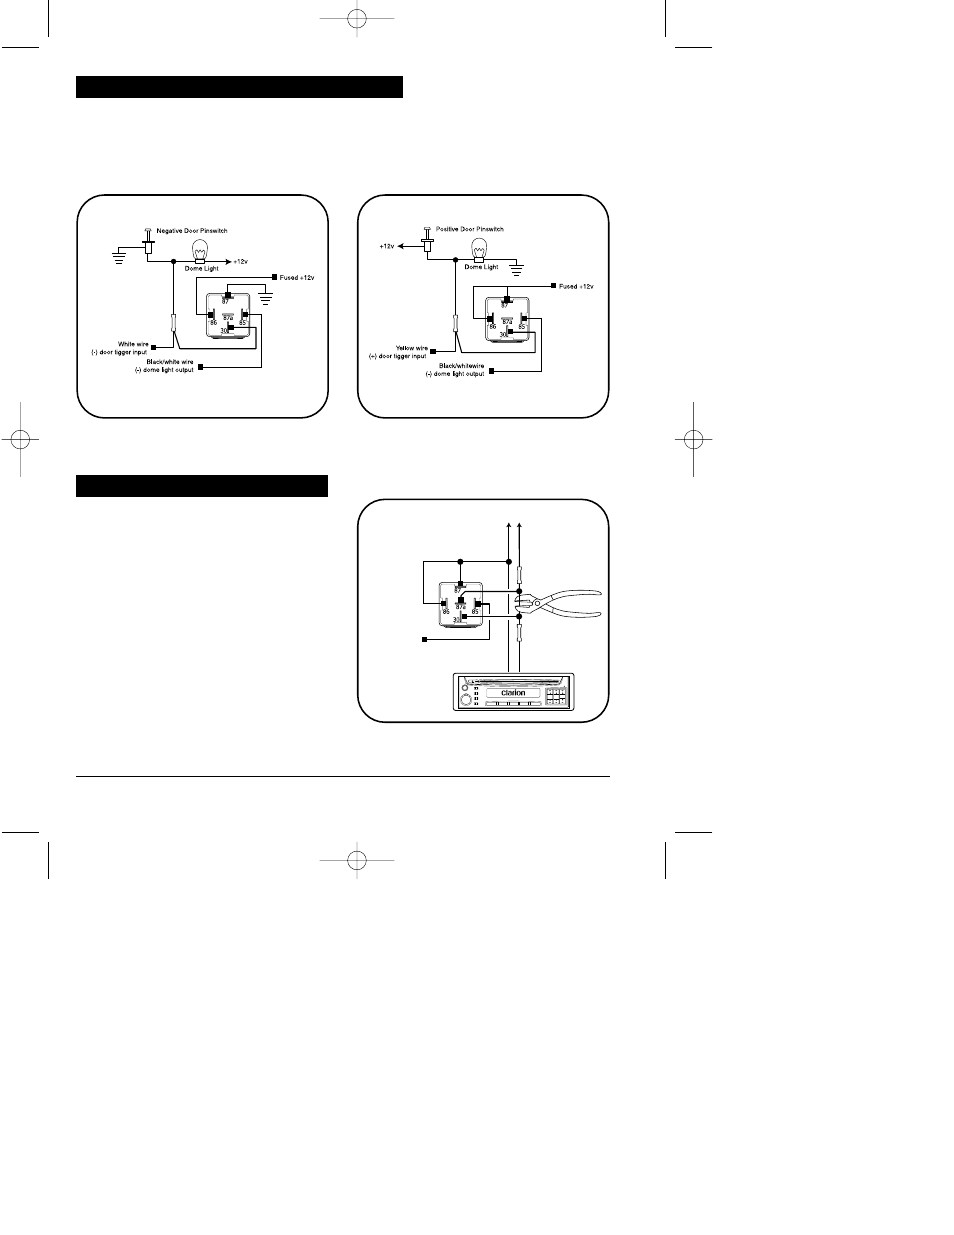 hight resolution of dome light control relay diagrams auxiliary function 2 output clarion ungo ms3001 user manual page 20 26